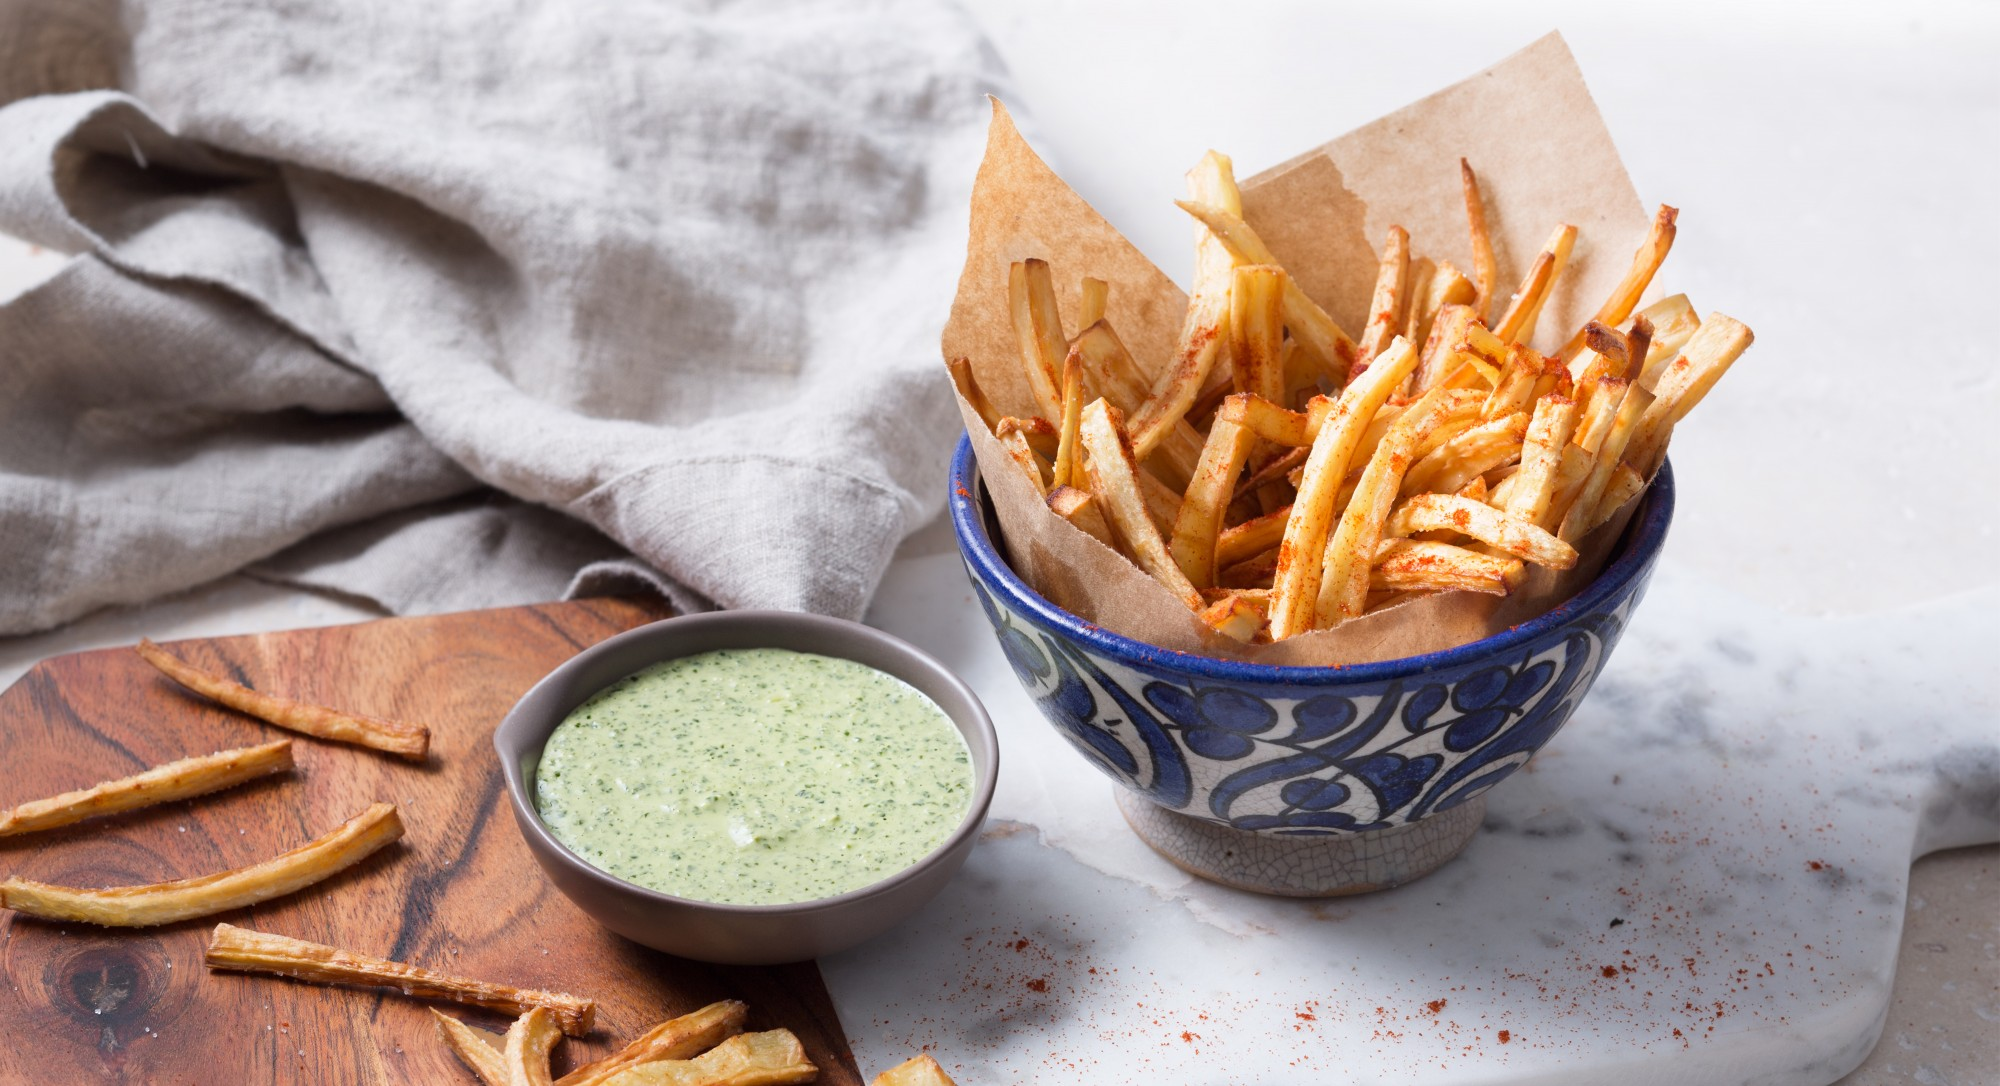 Who Needs Potatoes When You Can Make Crisp, Paleo-Friendly Parsnip Fries?